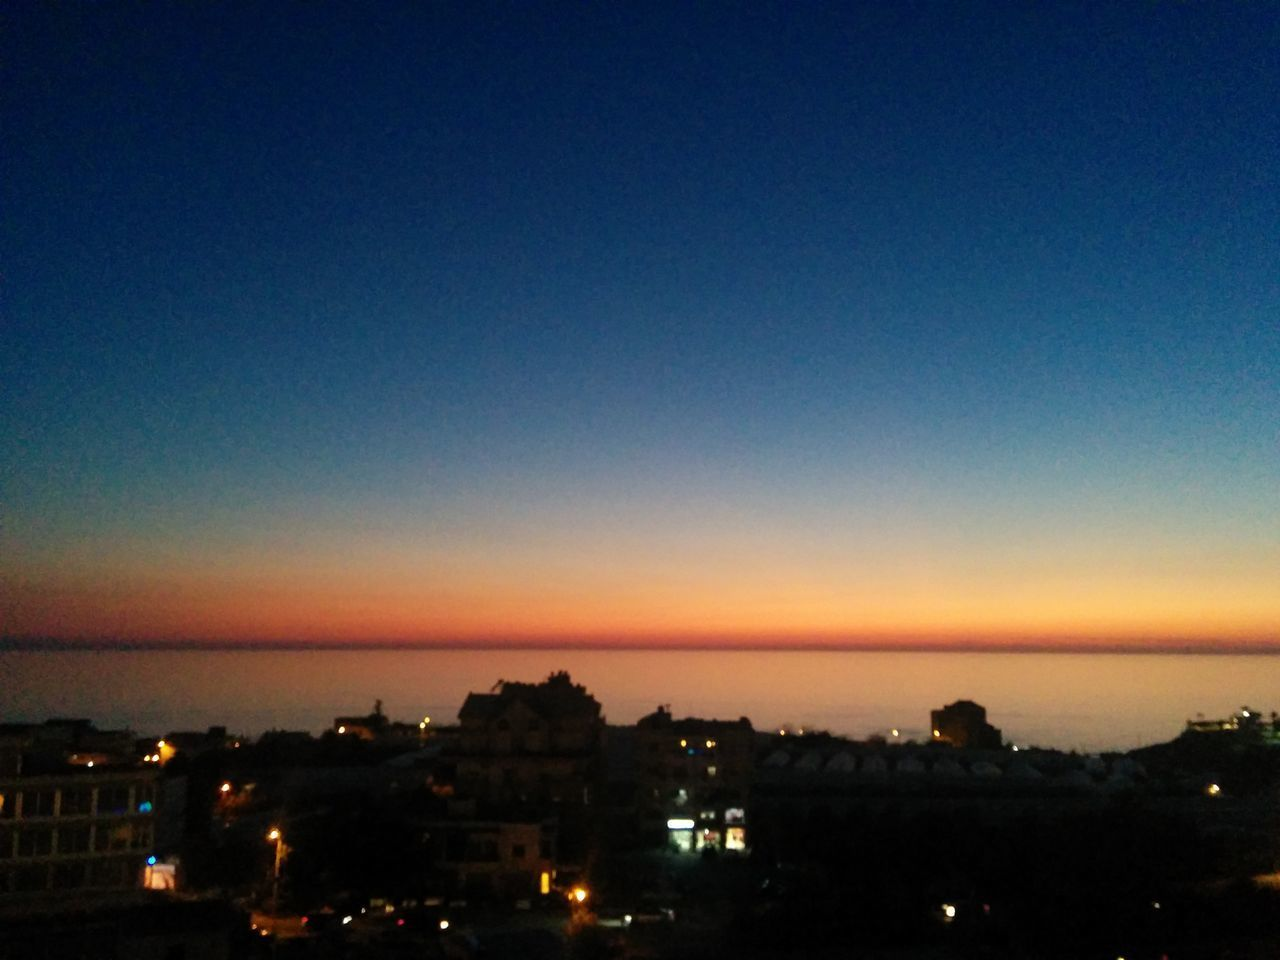 Dusk Sky In Byblos Sunset Sky City Building Exterior Night Outdoors Beauty In Nature Scenics No People Nature Illuminated Cityscape